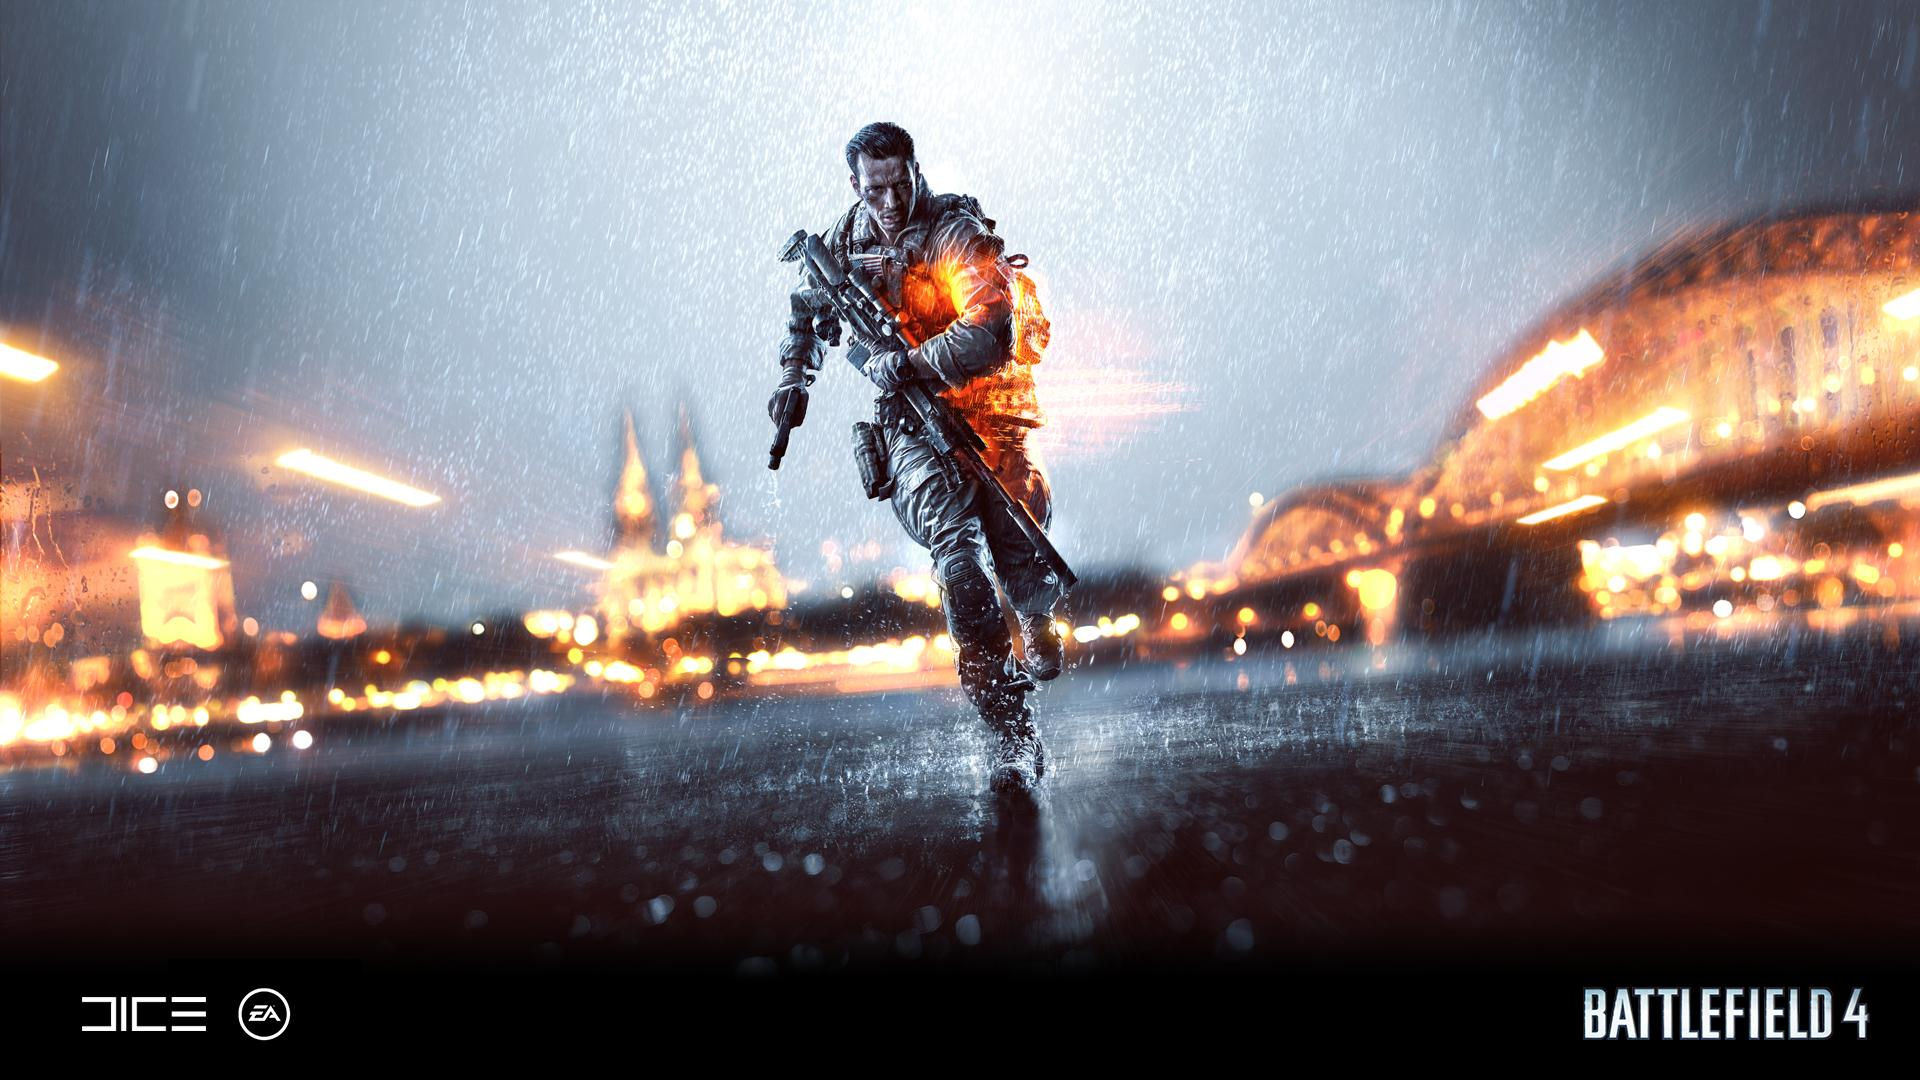 Battlefield 4 full hd wallpaper and background image 1920x1080 video game battlefield 4 wallpaper voltagebd Images